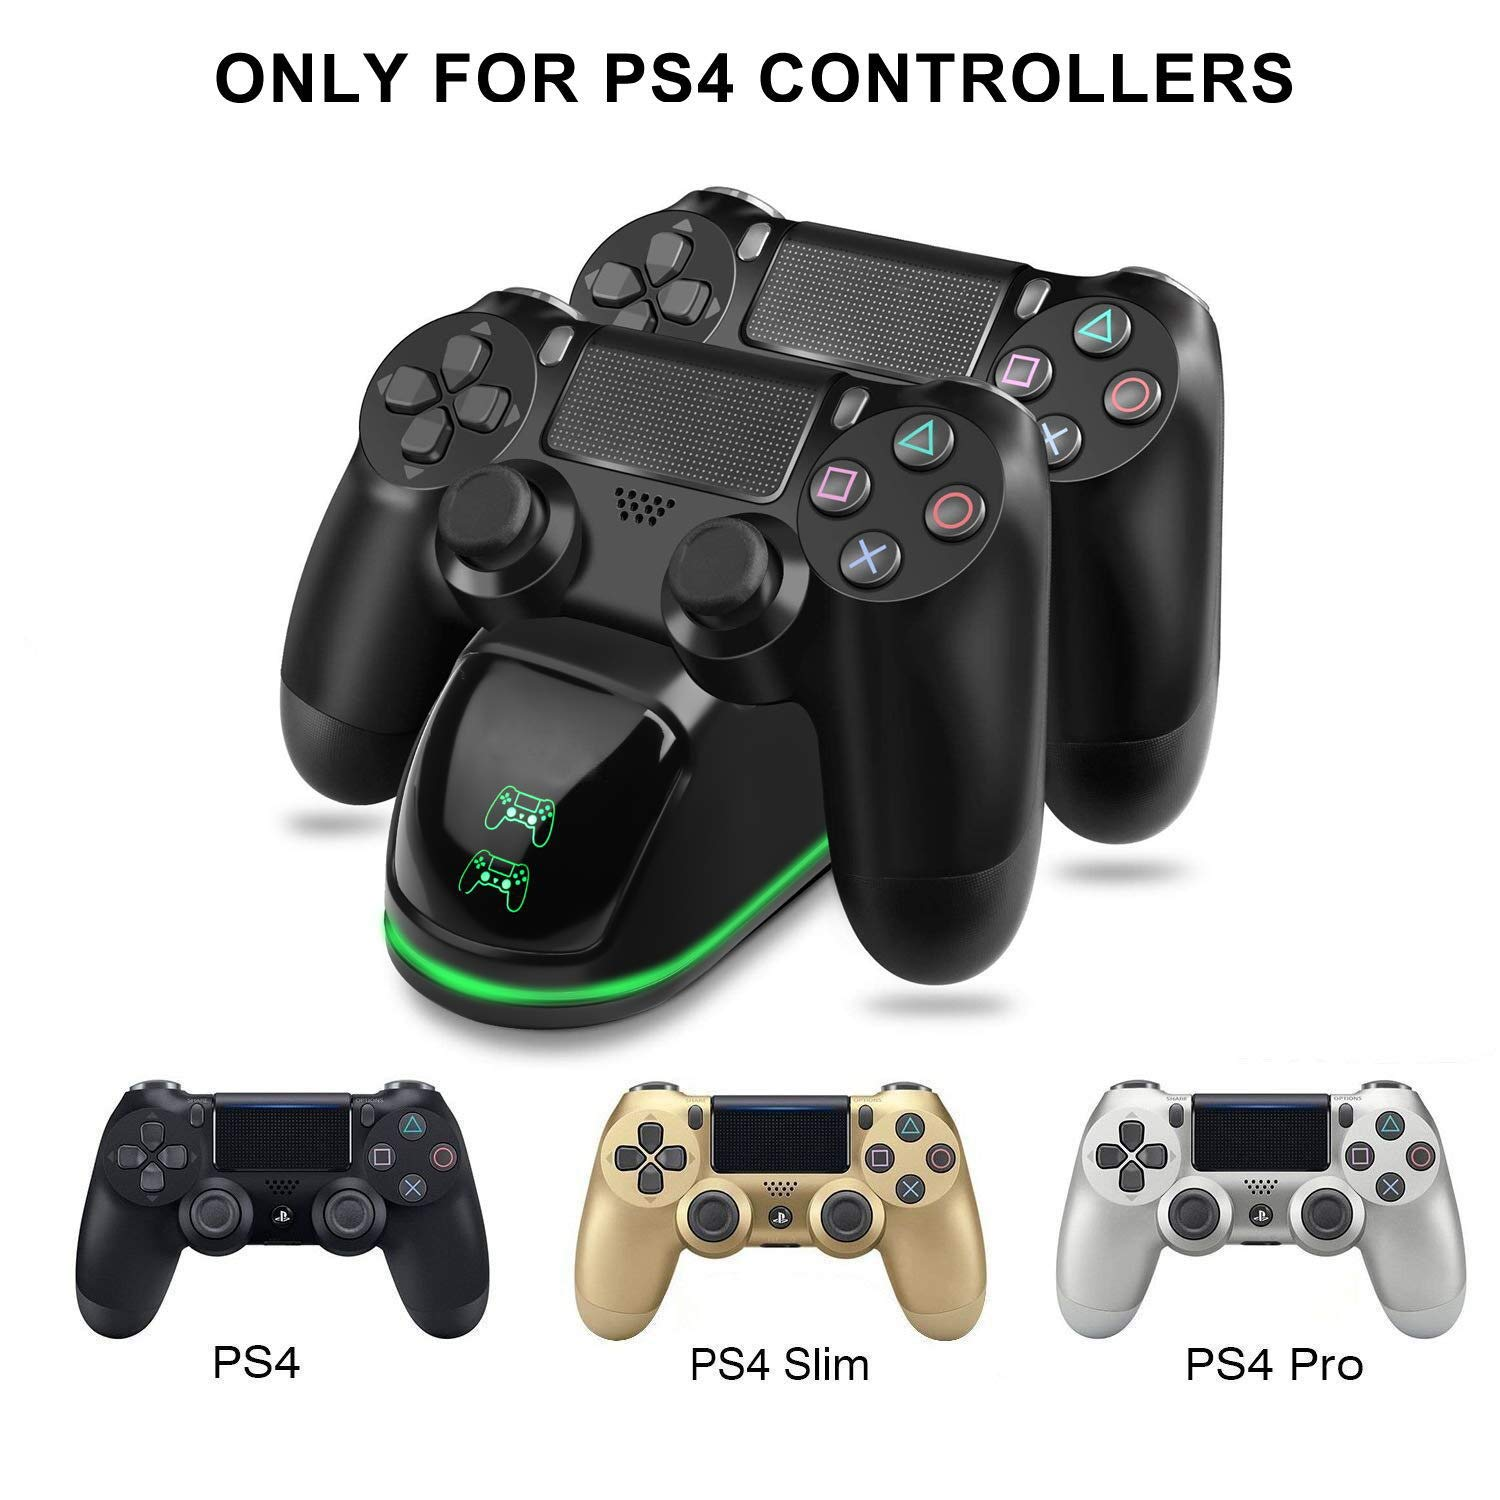 TGJOR PS4 Controller Charger - DualShock 4 PS4 Wireless Controller USB High-Speed Charging Dock, Playstation 4 Charging Station for Sony Playstation4 ...